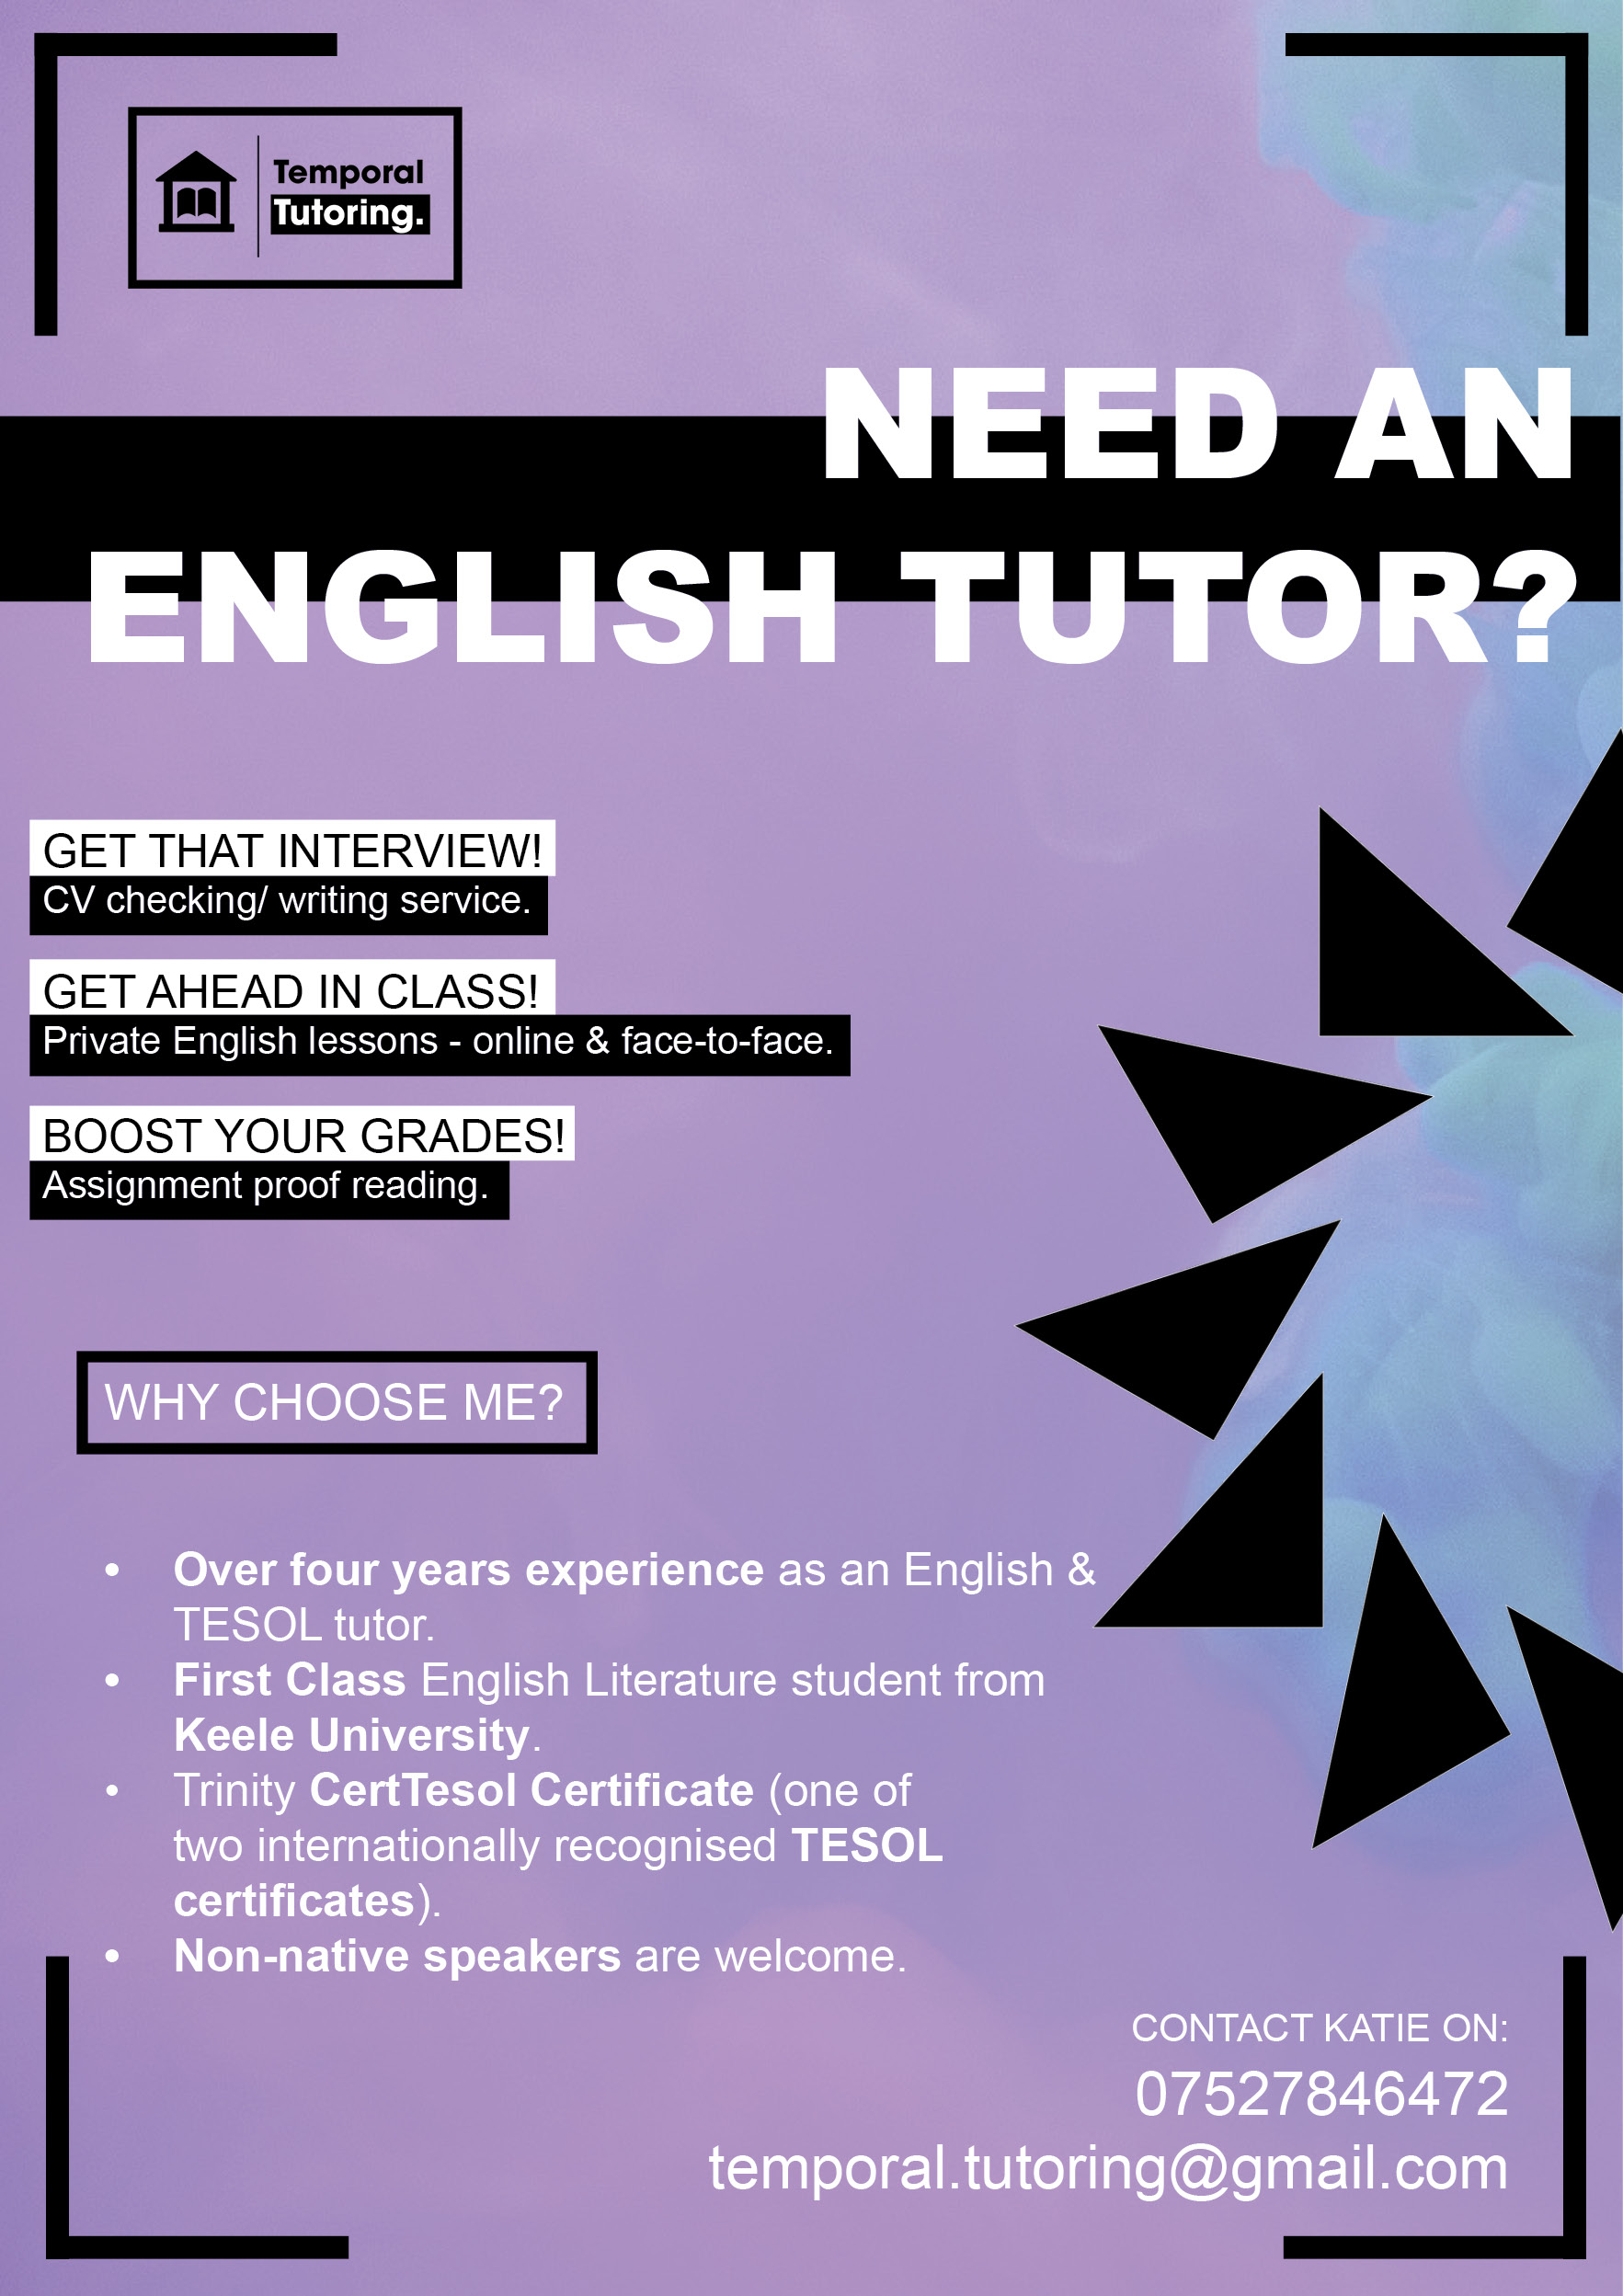 Temporal Tutoring Flyer Image